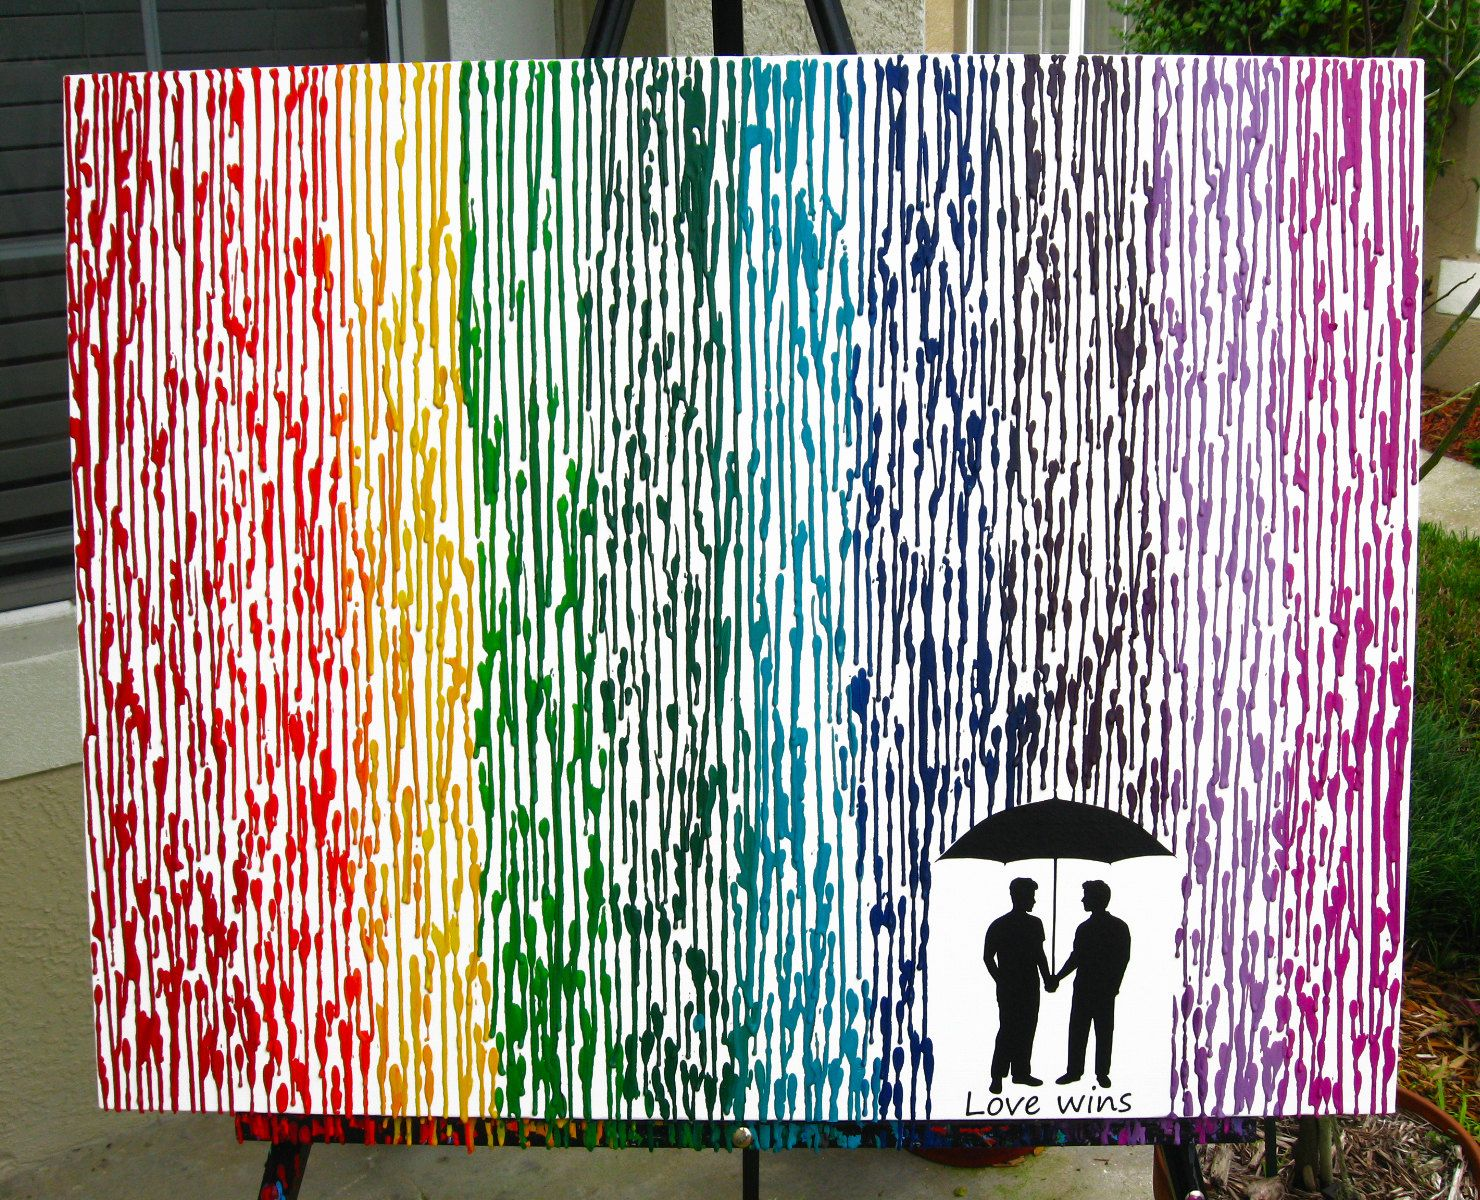 What To Get A Gay Couple For A Wedding Gift: Gay Pride Art, Love Wins, Gay Wedding Gift, 22x28 Rainbow